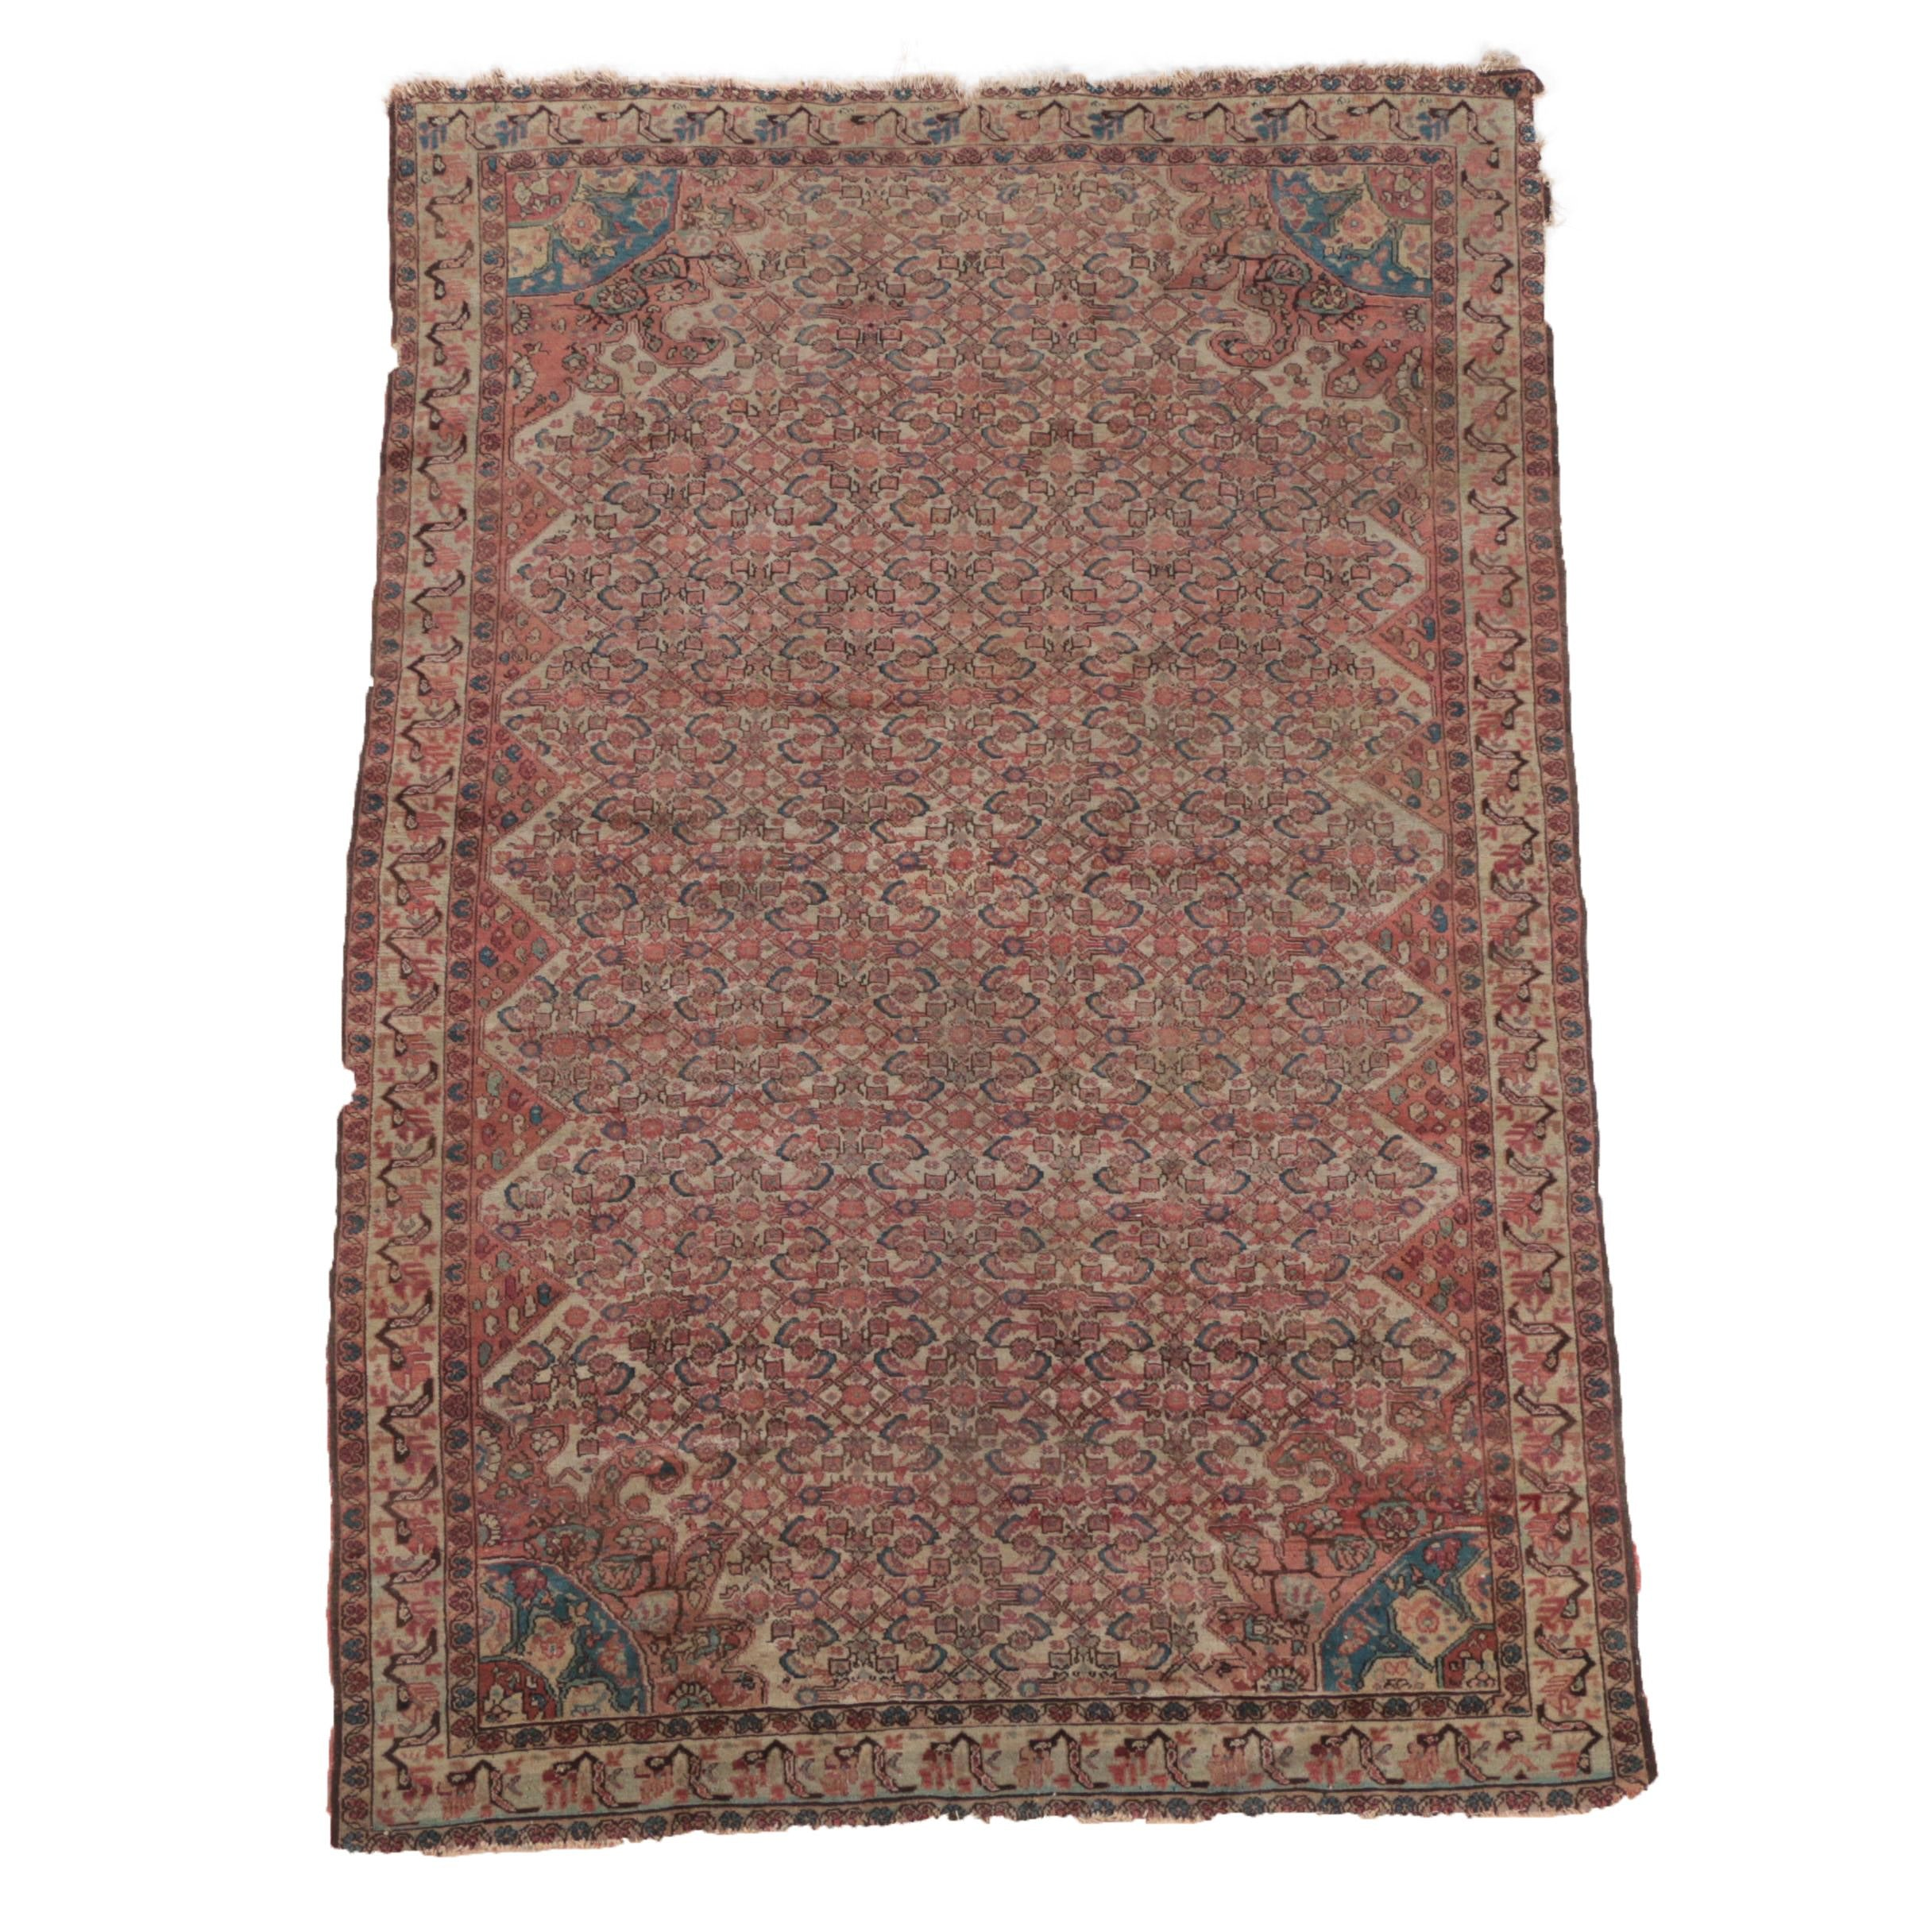 Semi-Antique Hand-Knotted Persian Senneh Wool Area Rug